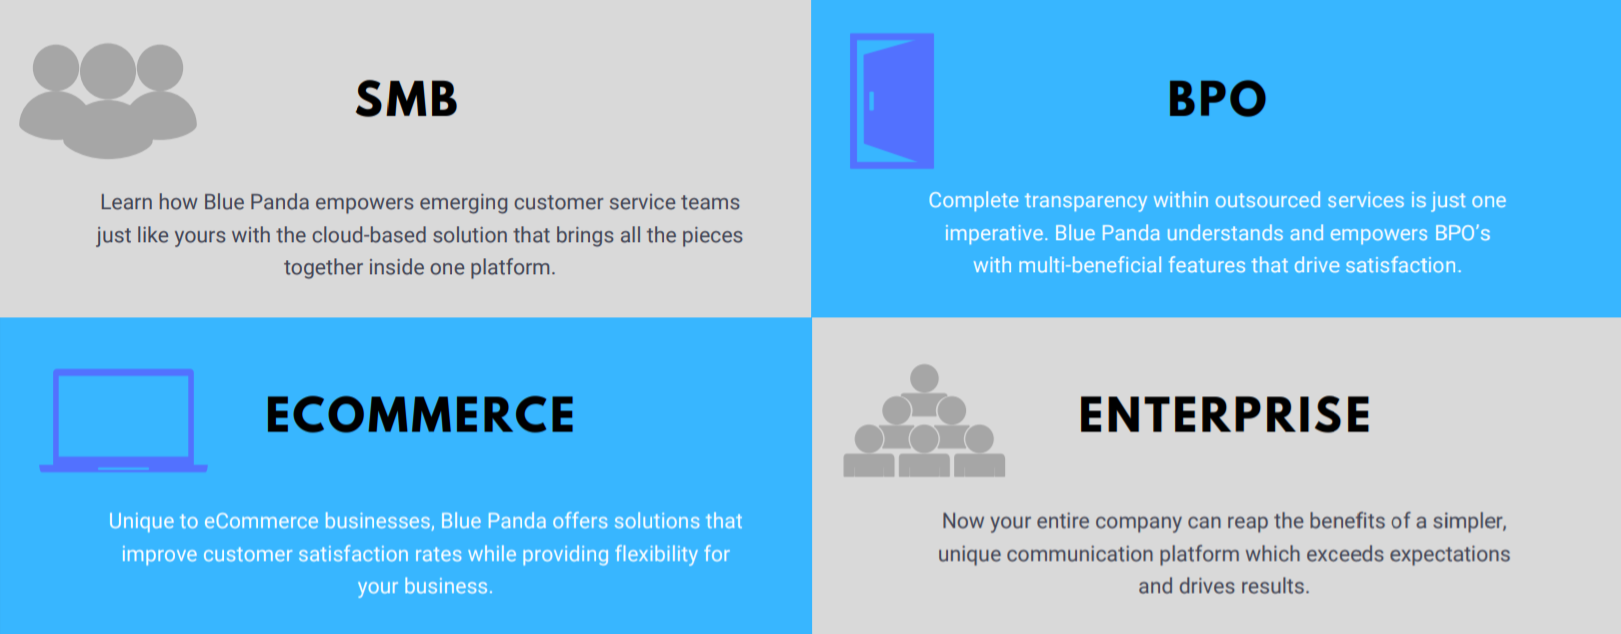 Blue Panda offers solutions to SMB, BPO, Ecommerce, and Enterprise businesses.